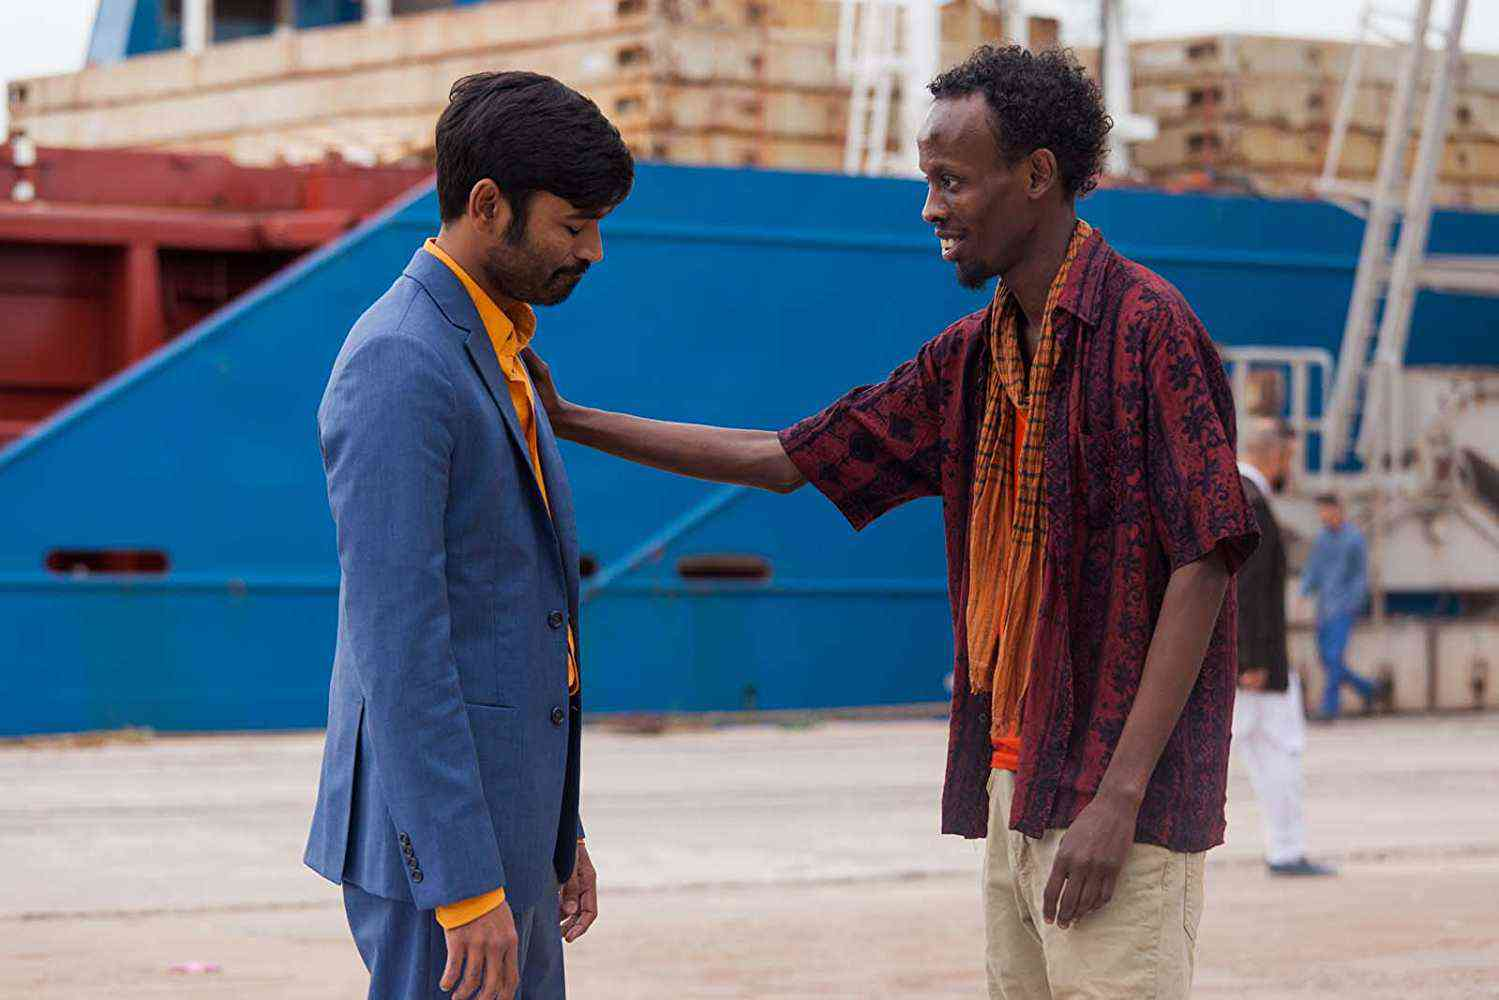 Dhanush and Barkhad Abdi in The Extraordinary Journey of the Fakir. Courtesy Sony Pictures.